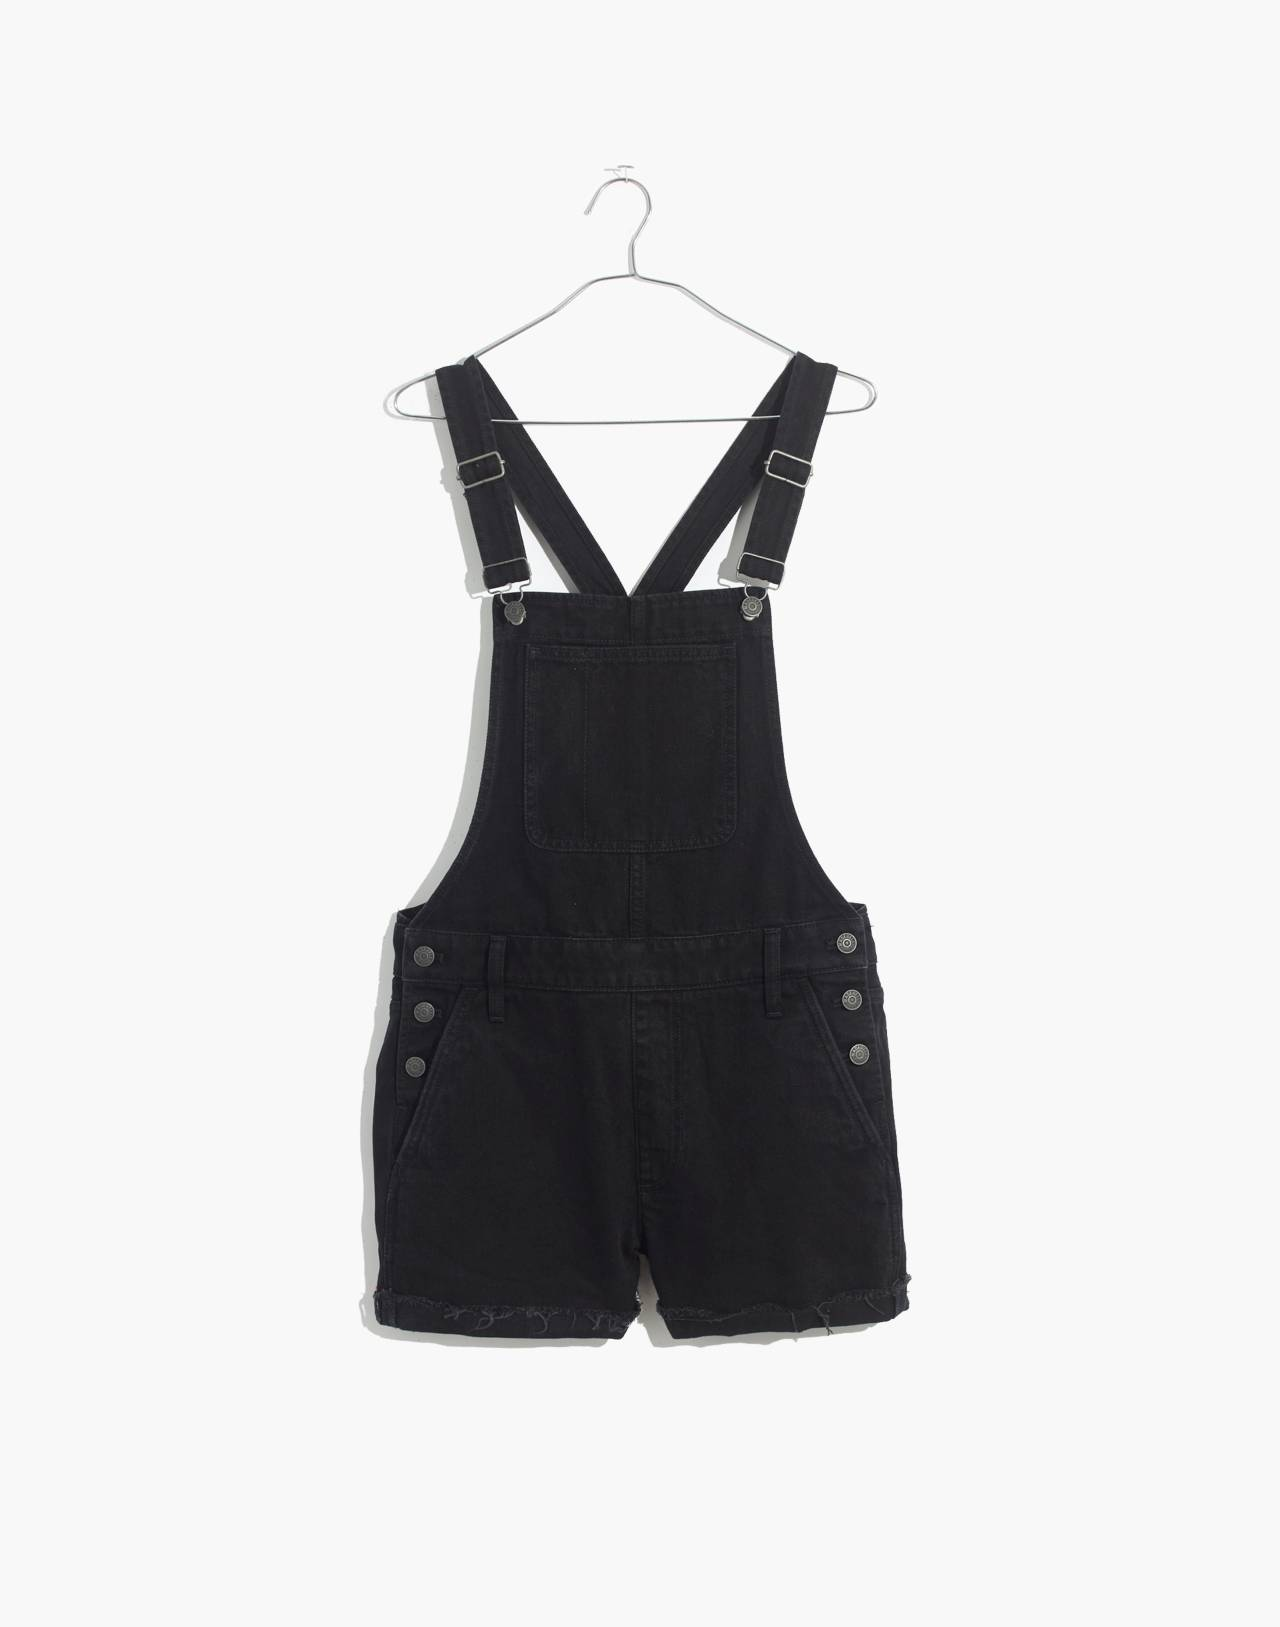 Adirondack Short Overalls in Washed Black in washed black image 4